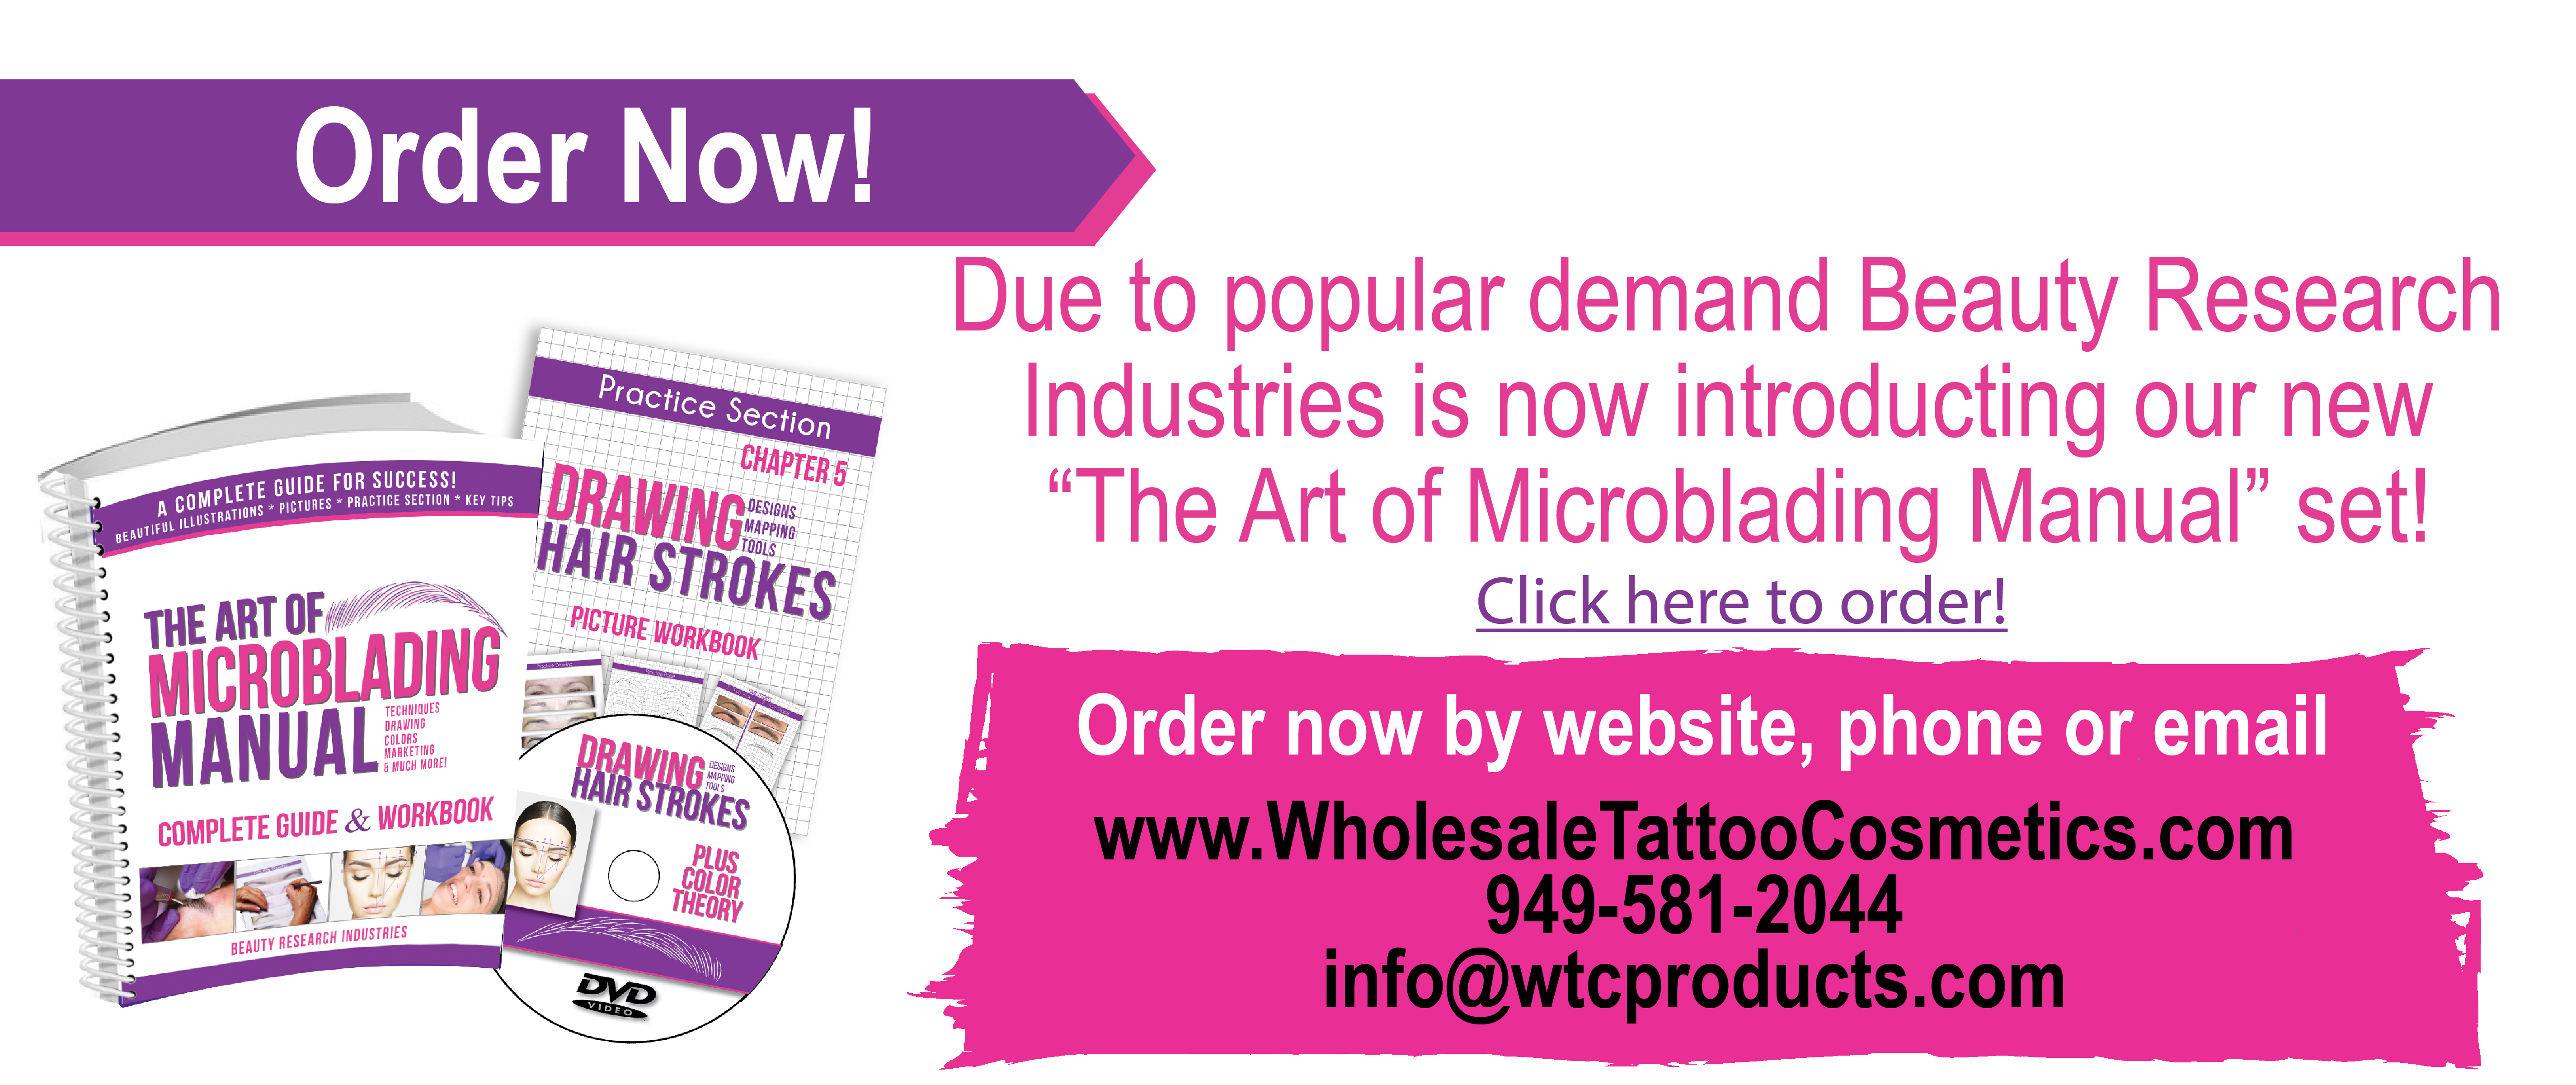 Wholesale Tattoo Cosmetics - Cosmetic Tattoo Supplies The Art Of Microblading Manual